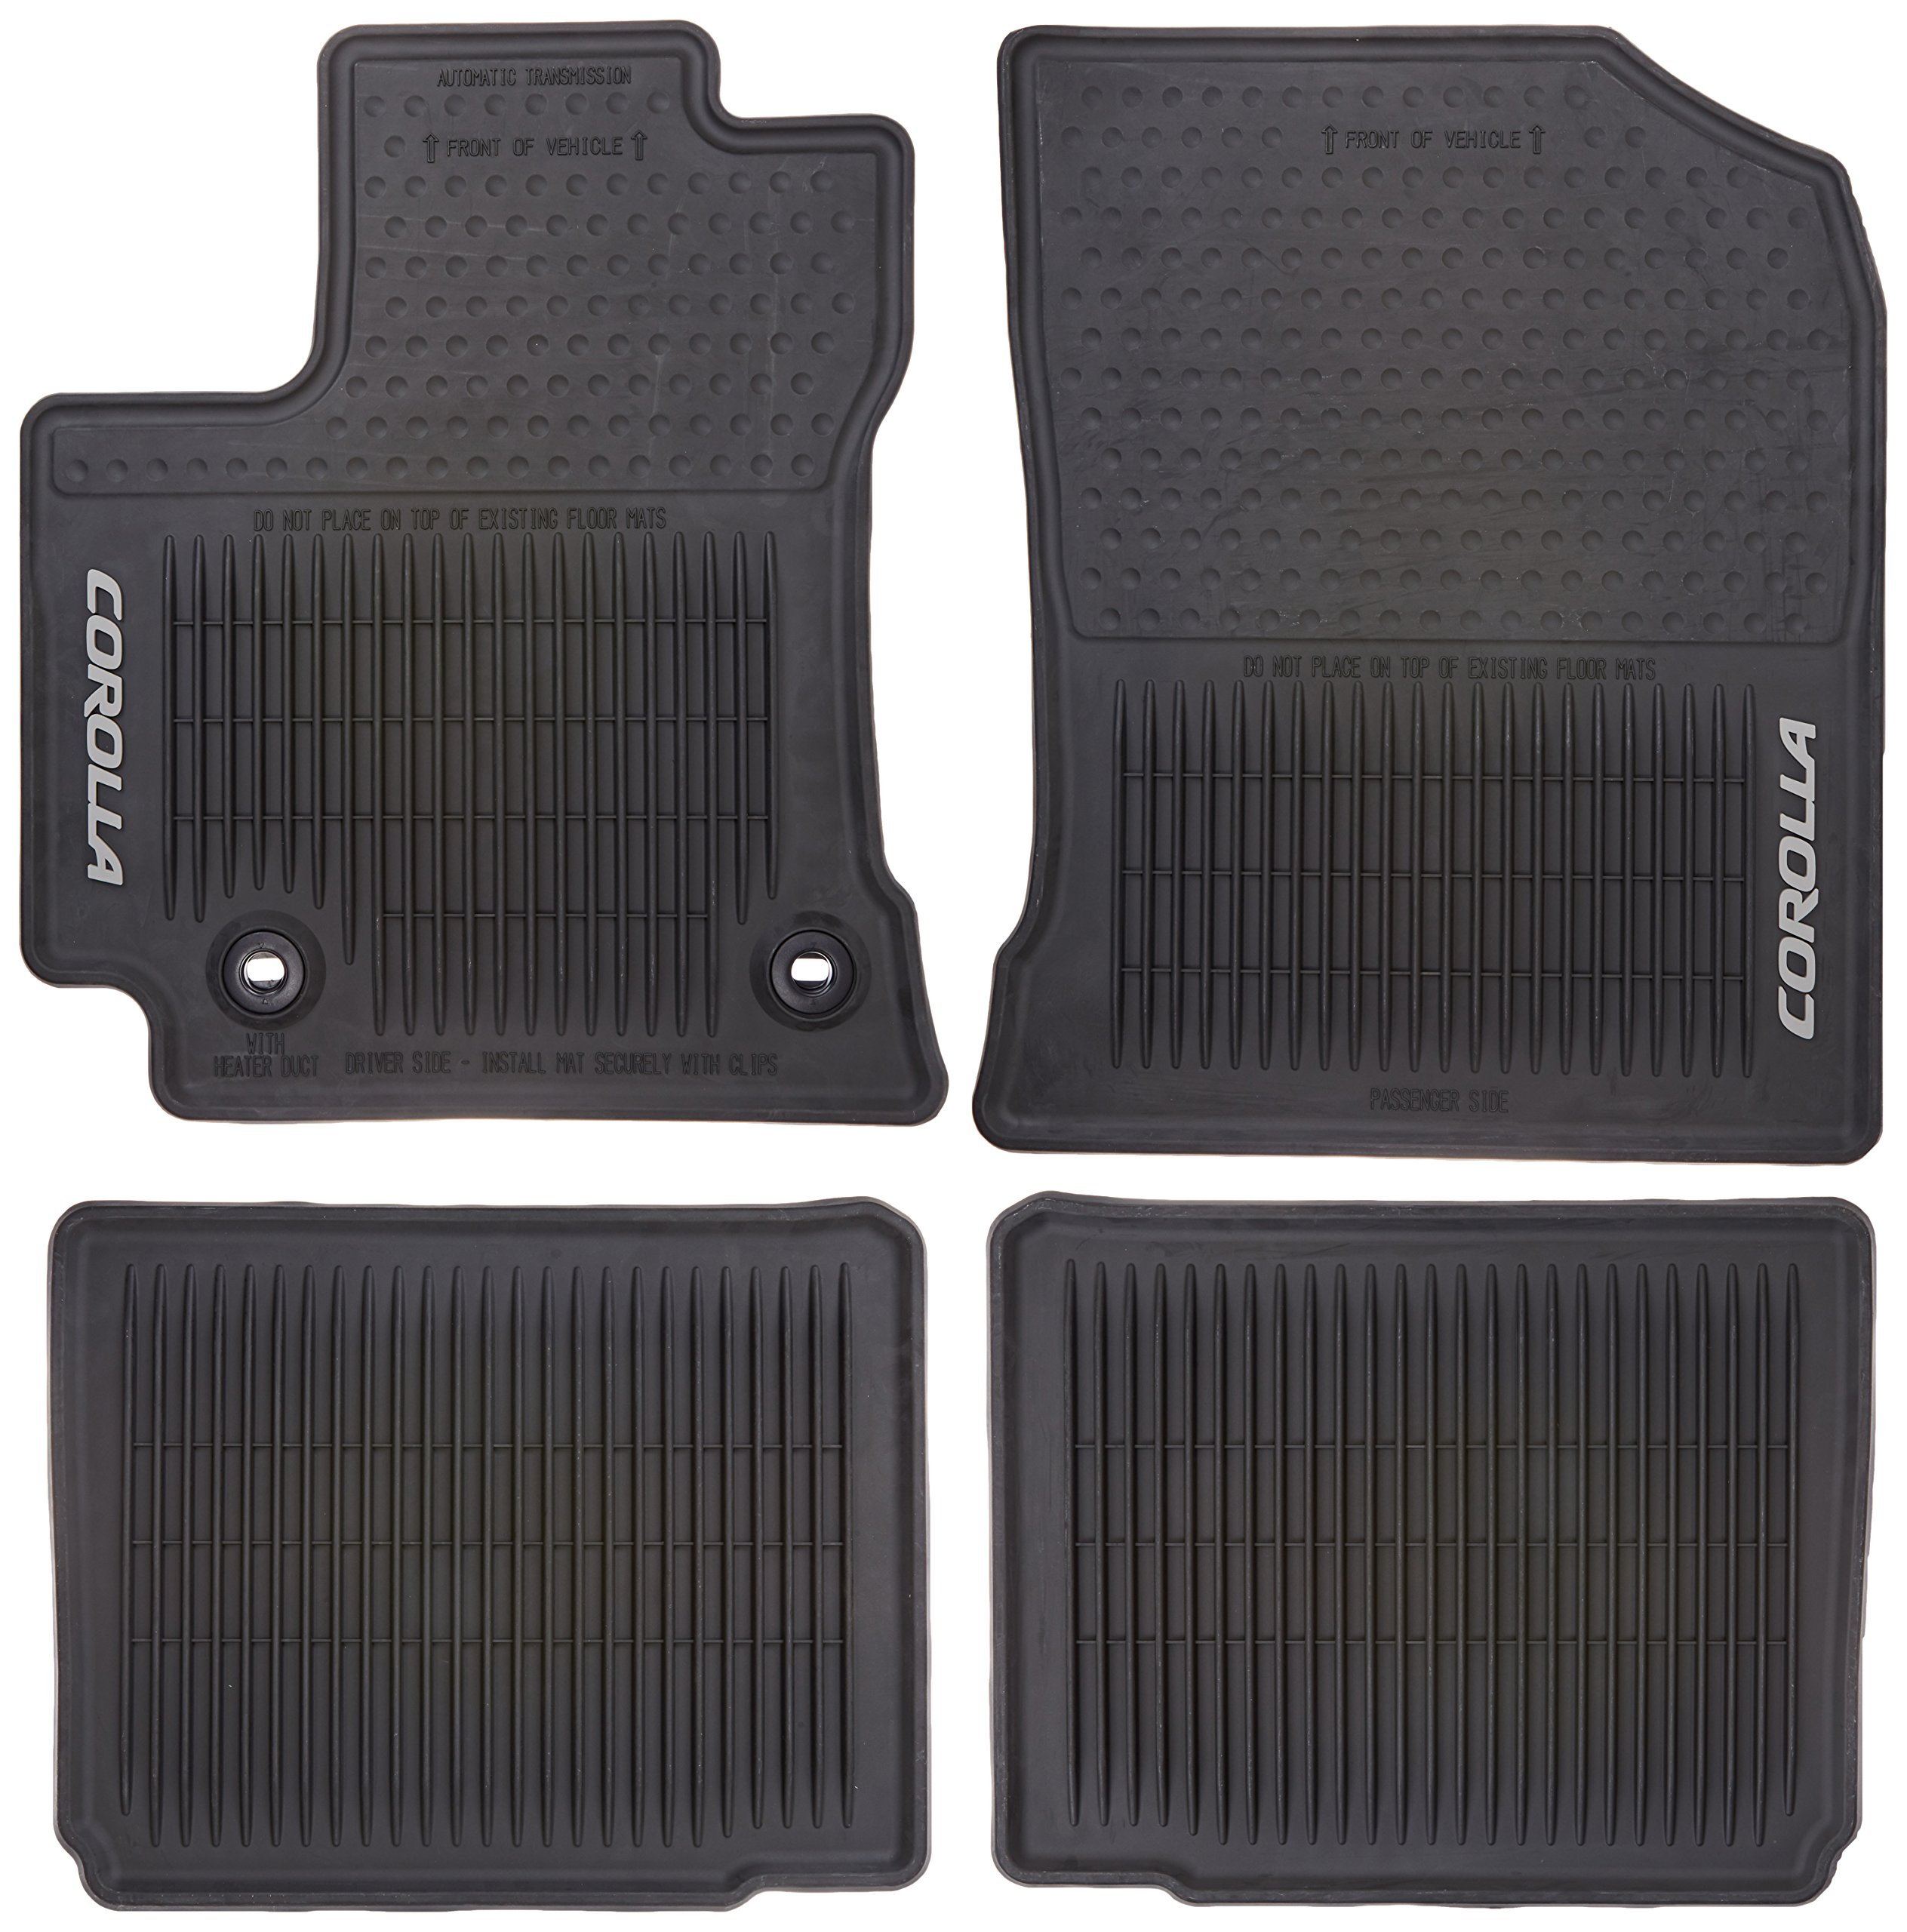 rubber suv interior ford all black mat mats armor floor f season piece amazon com truck dp